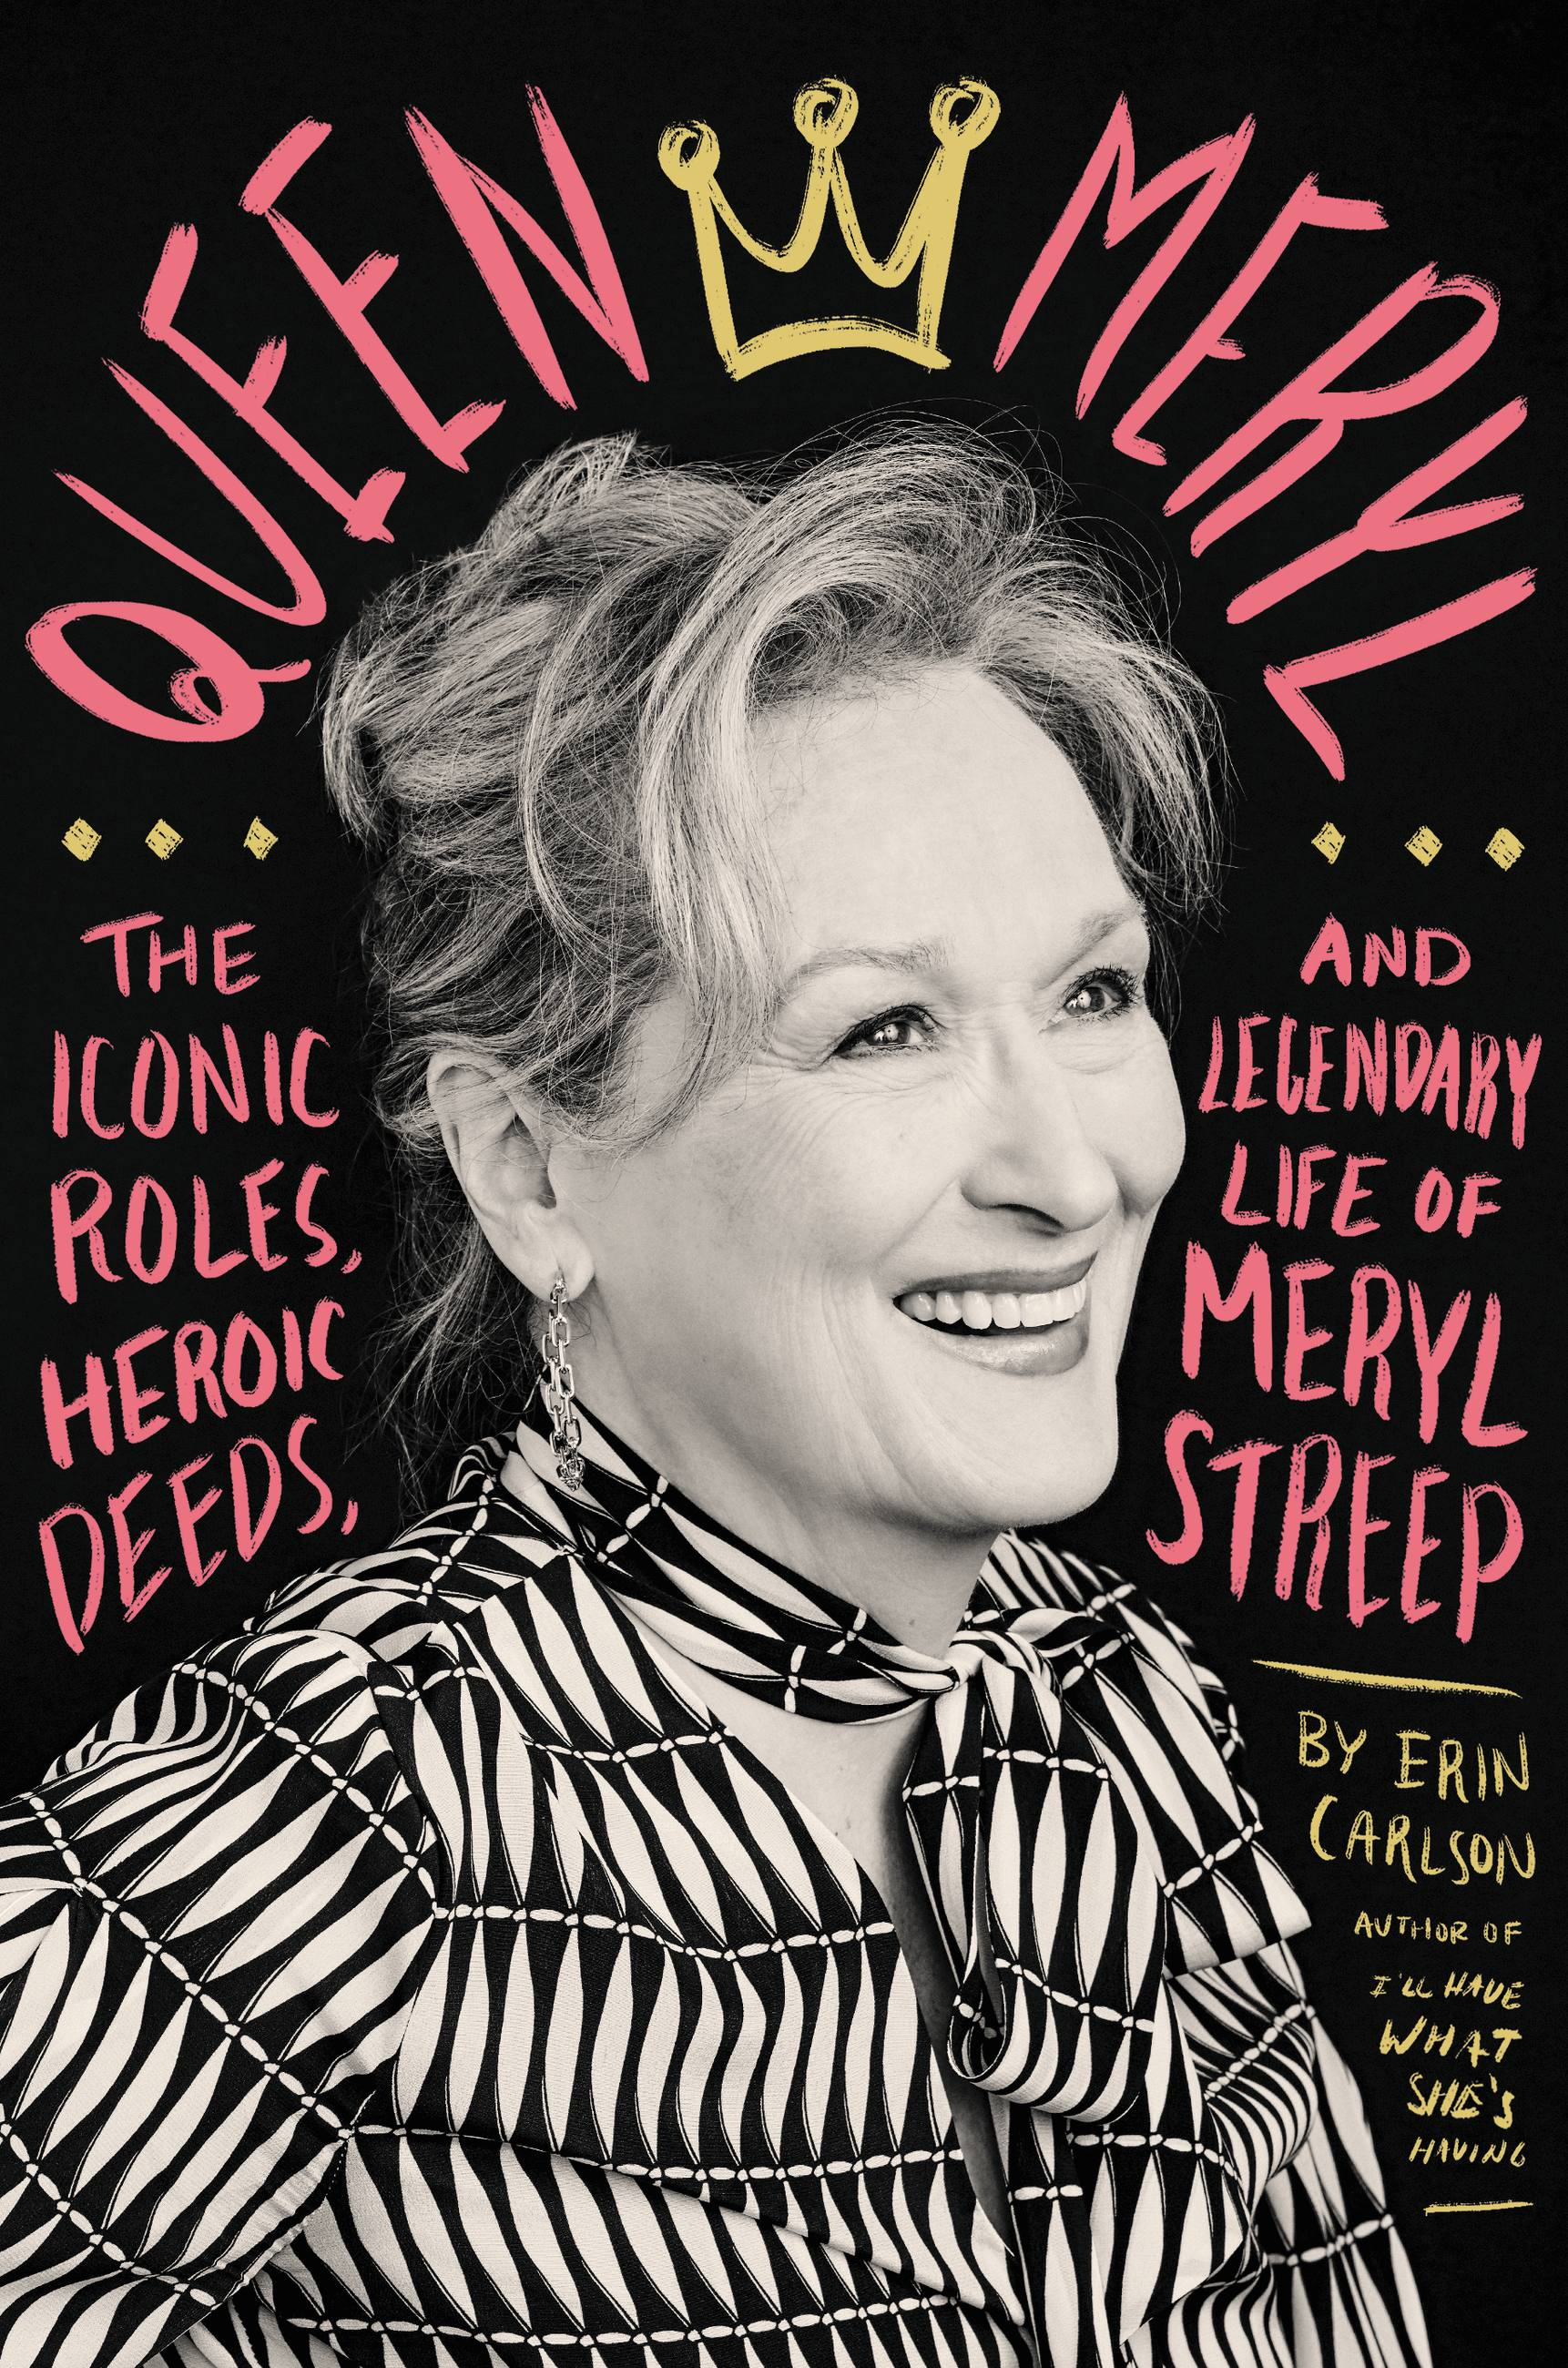 Cover image for Queen Meryl [electronic resource] : The Iconic Roles, Heroic Deeds, and Legendary Life of Meryl Streep